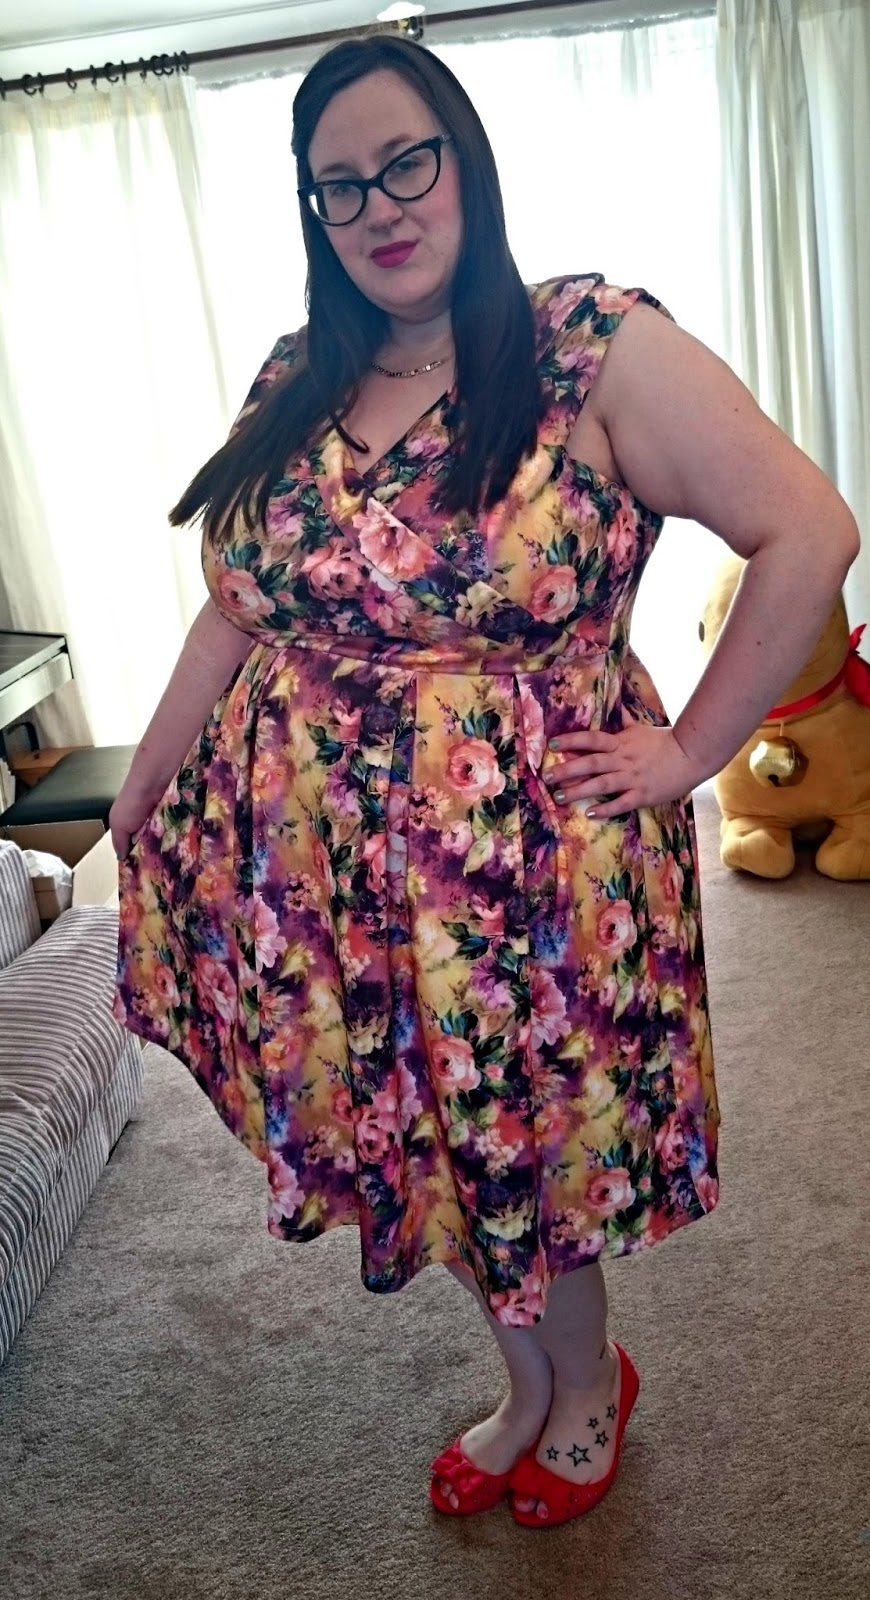 Paper Dolls Prom Dress - Does My Blog Make Me Look Fat?